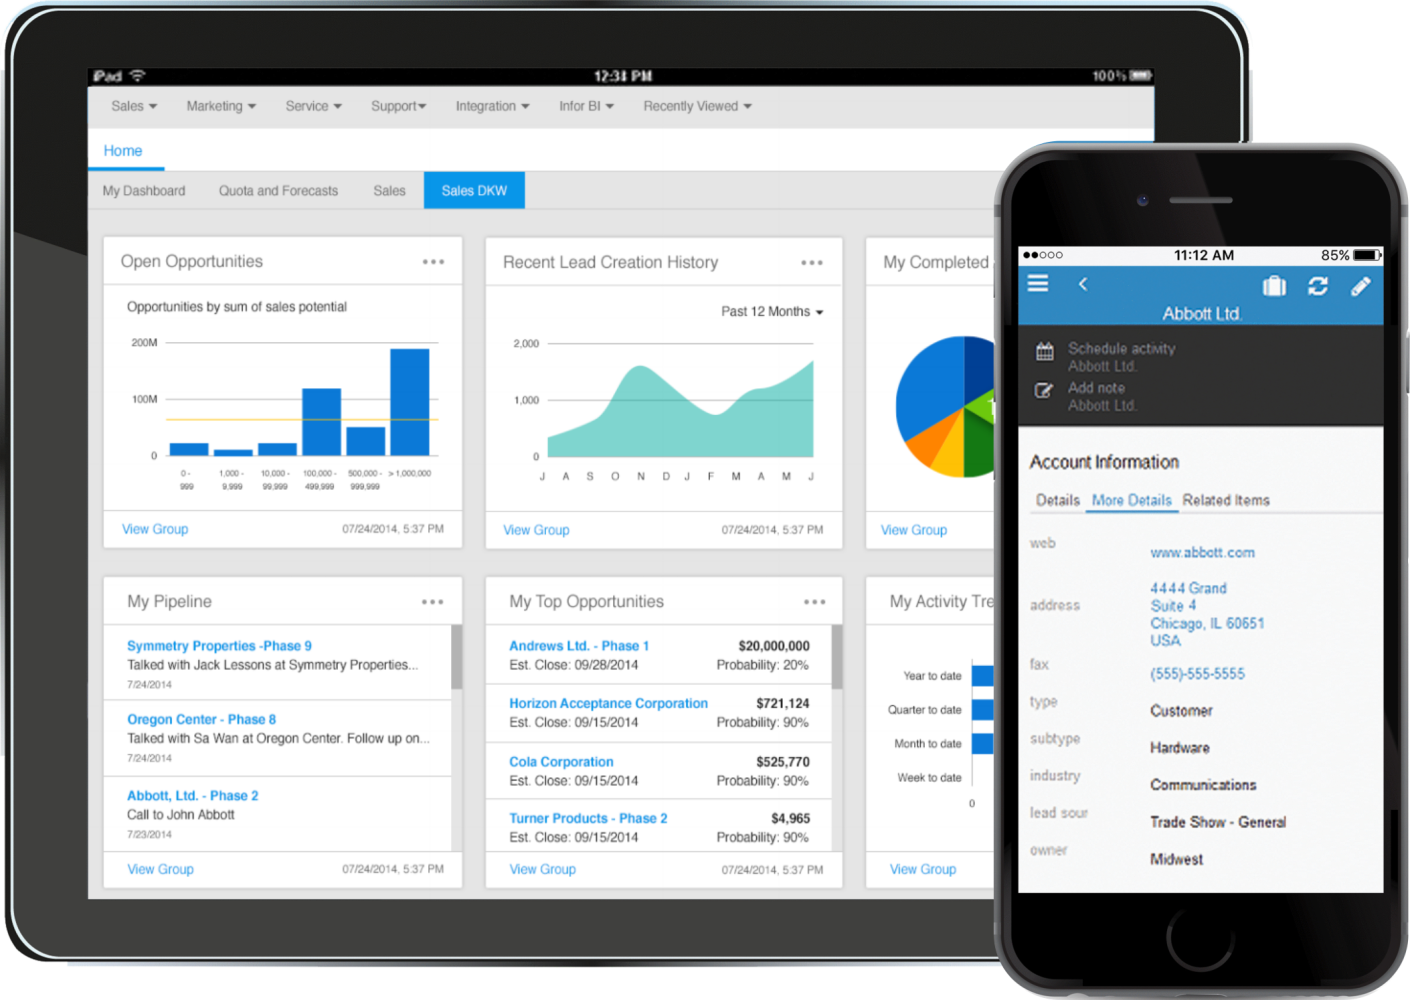 Infor CRM dashboard